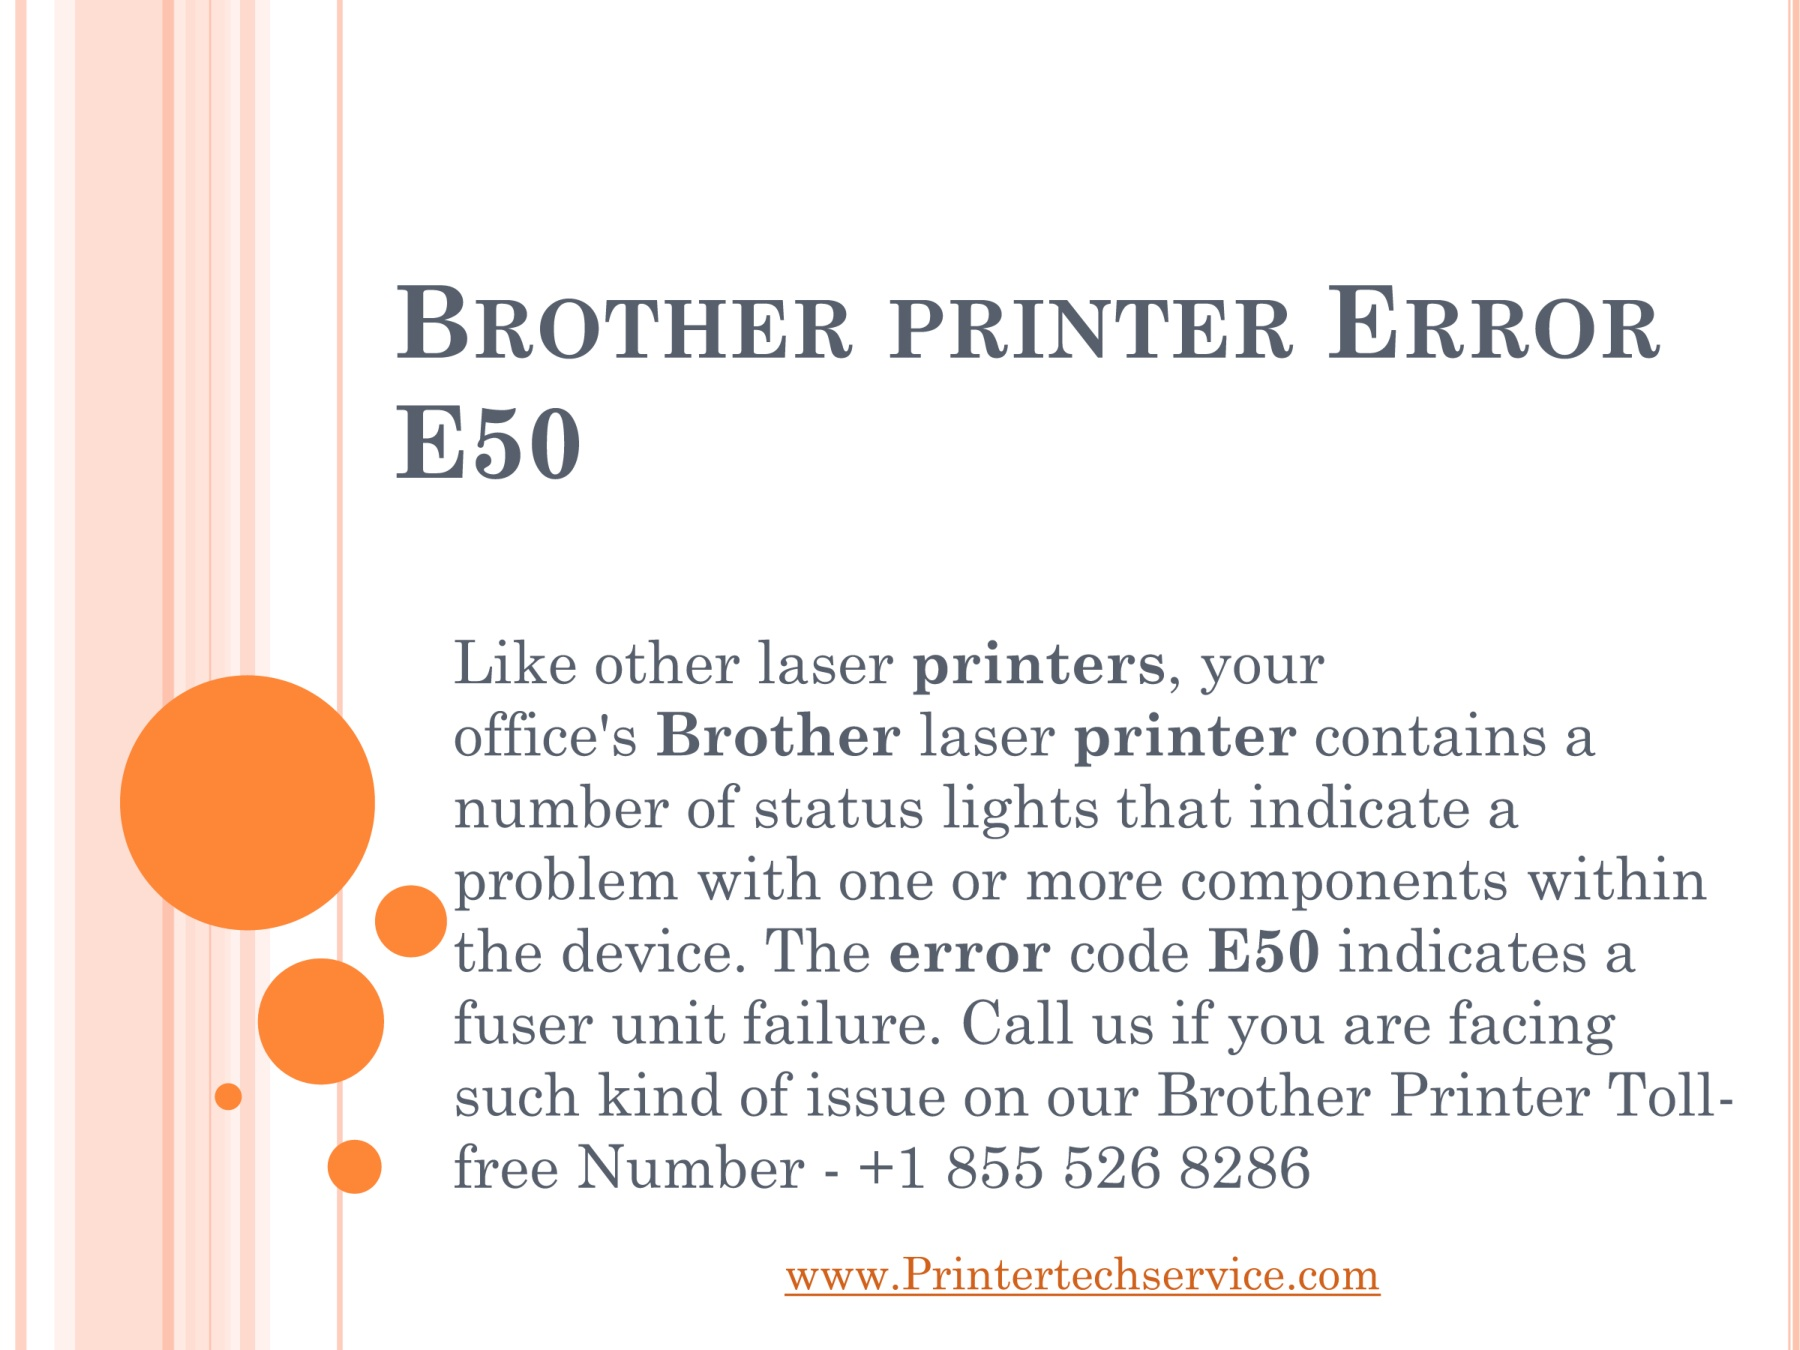 Brother Printer Support Phone Number - +1-855-526-8286 Pages 1 - 7